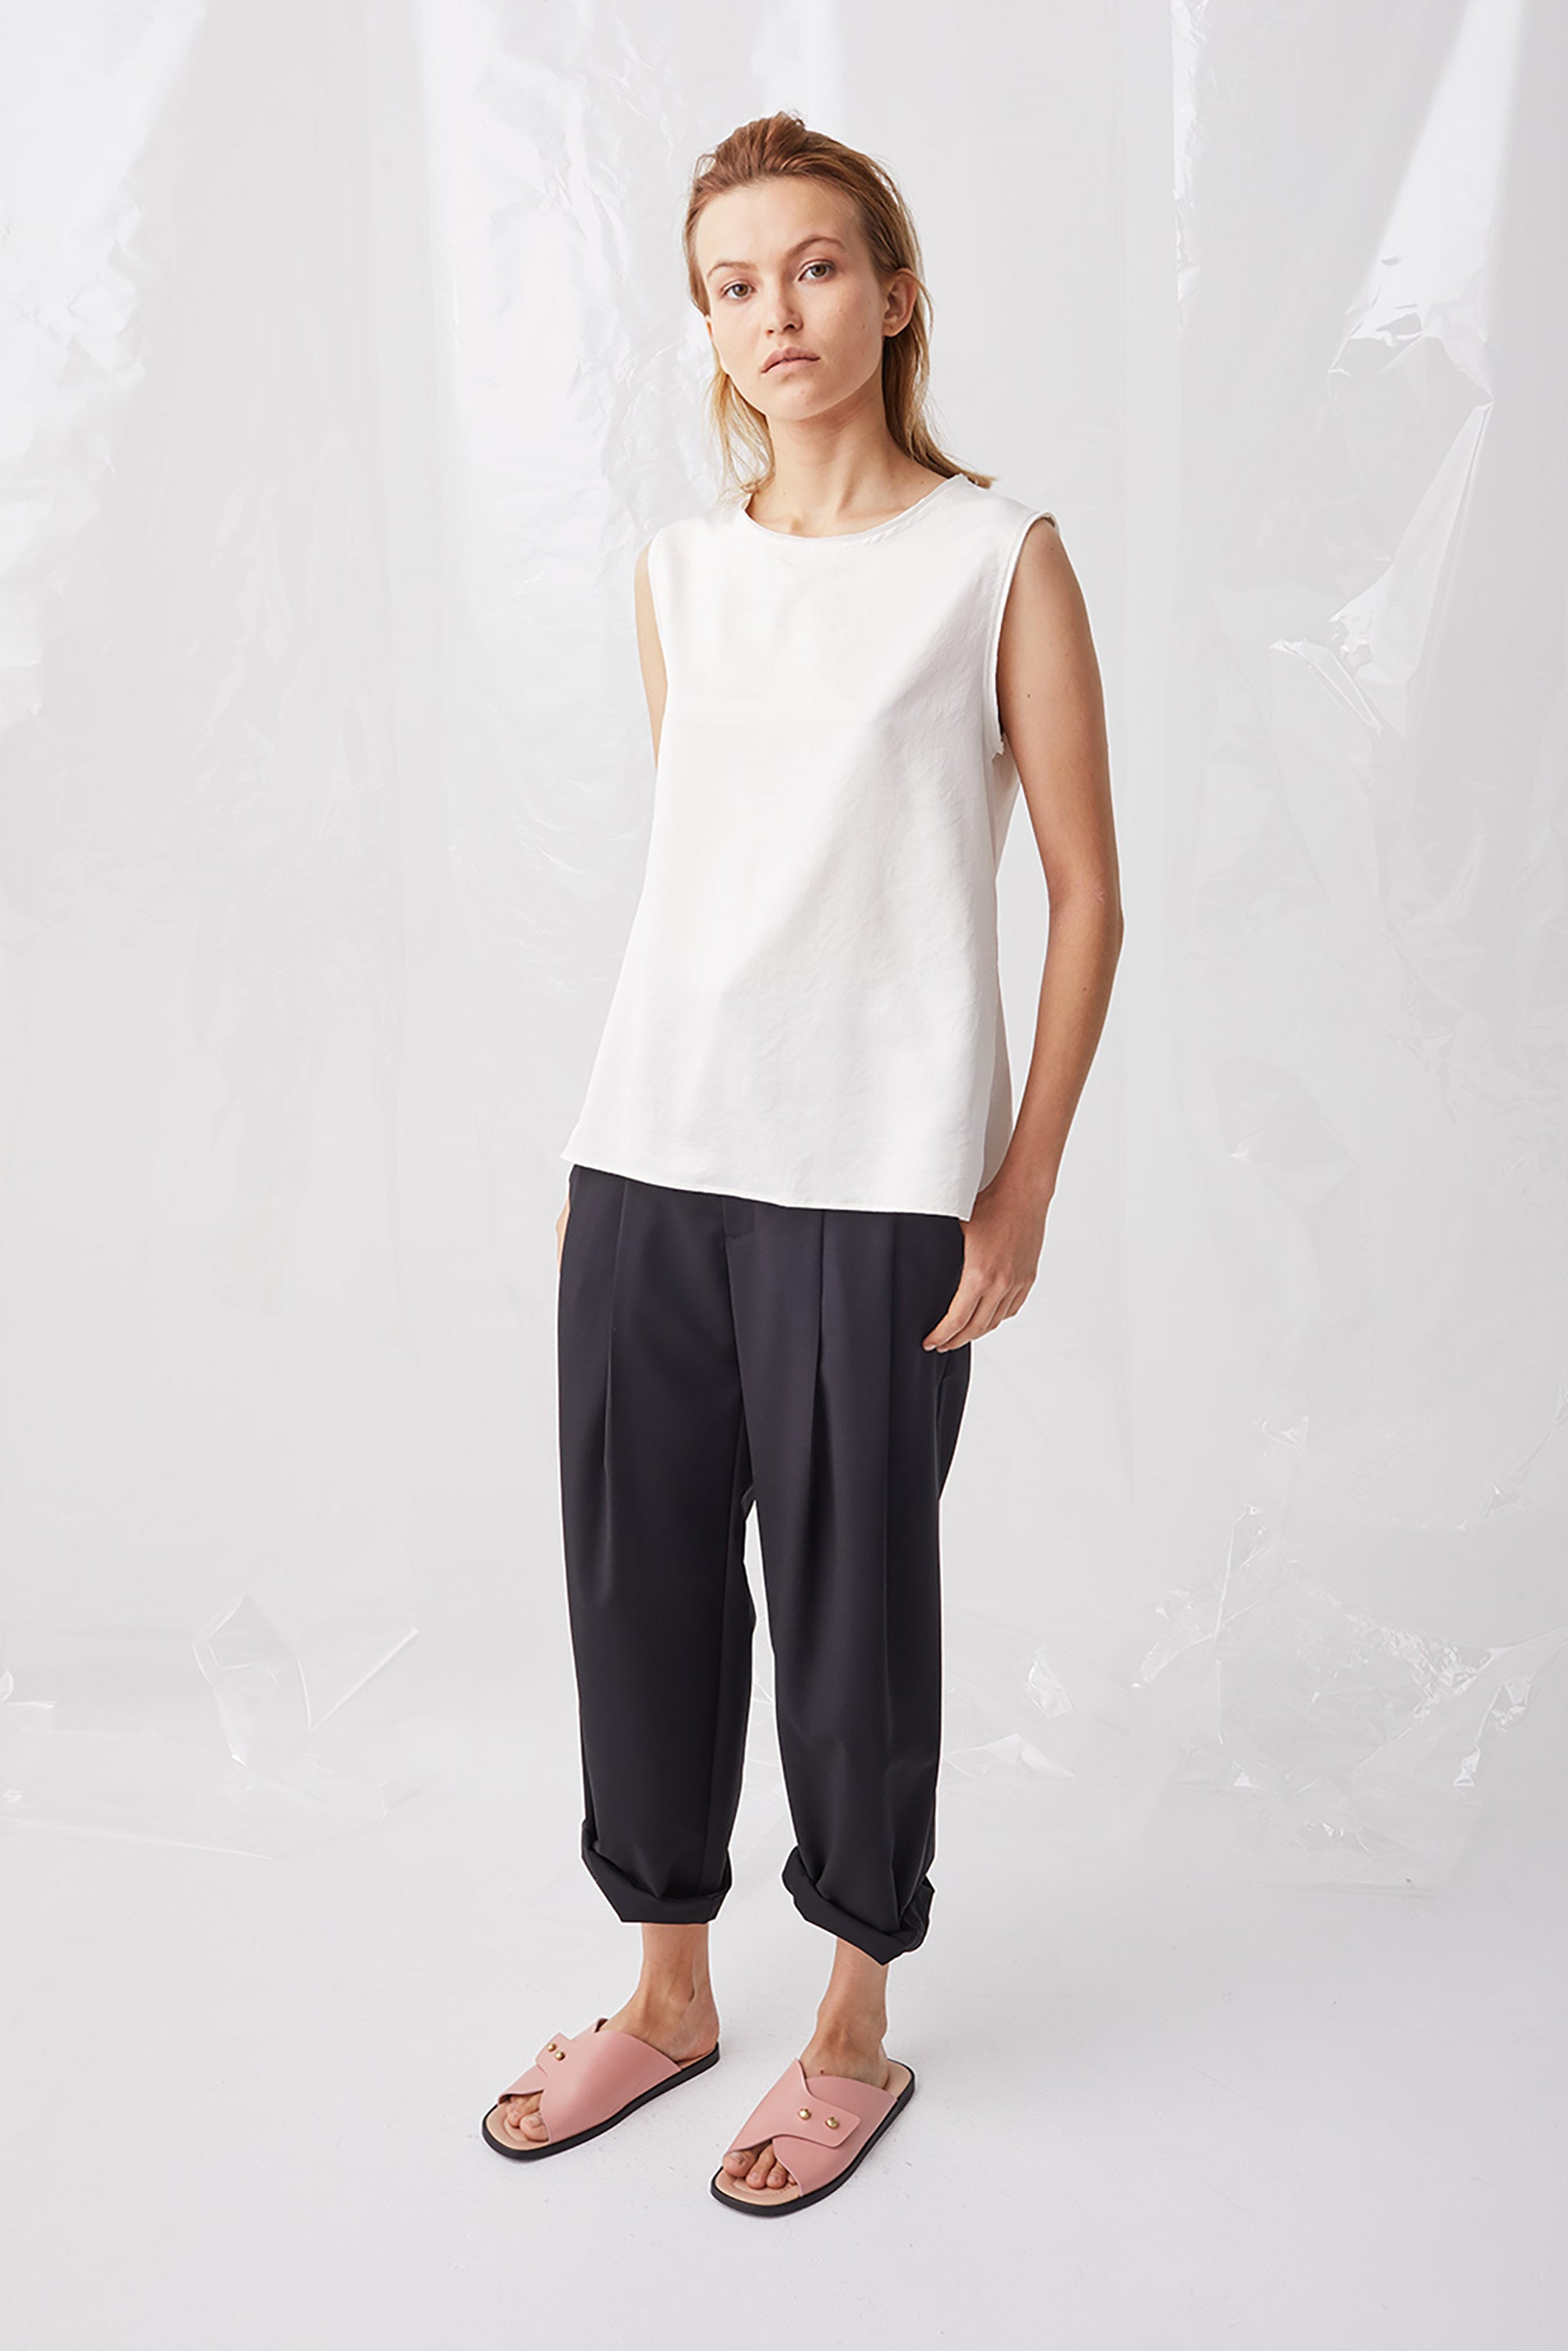 Ricochet NZ Fashion Designer Clothing Boutique SS18 Sapporo Pant Rolled Hem Made in NZ